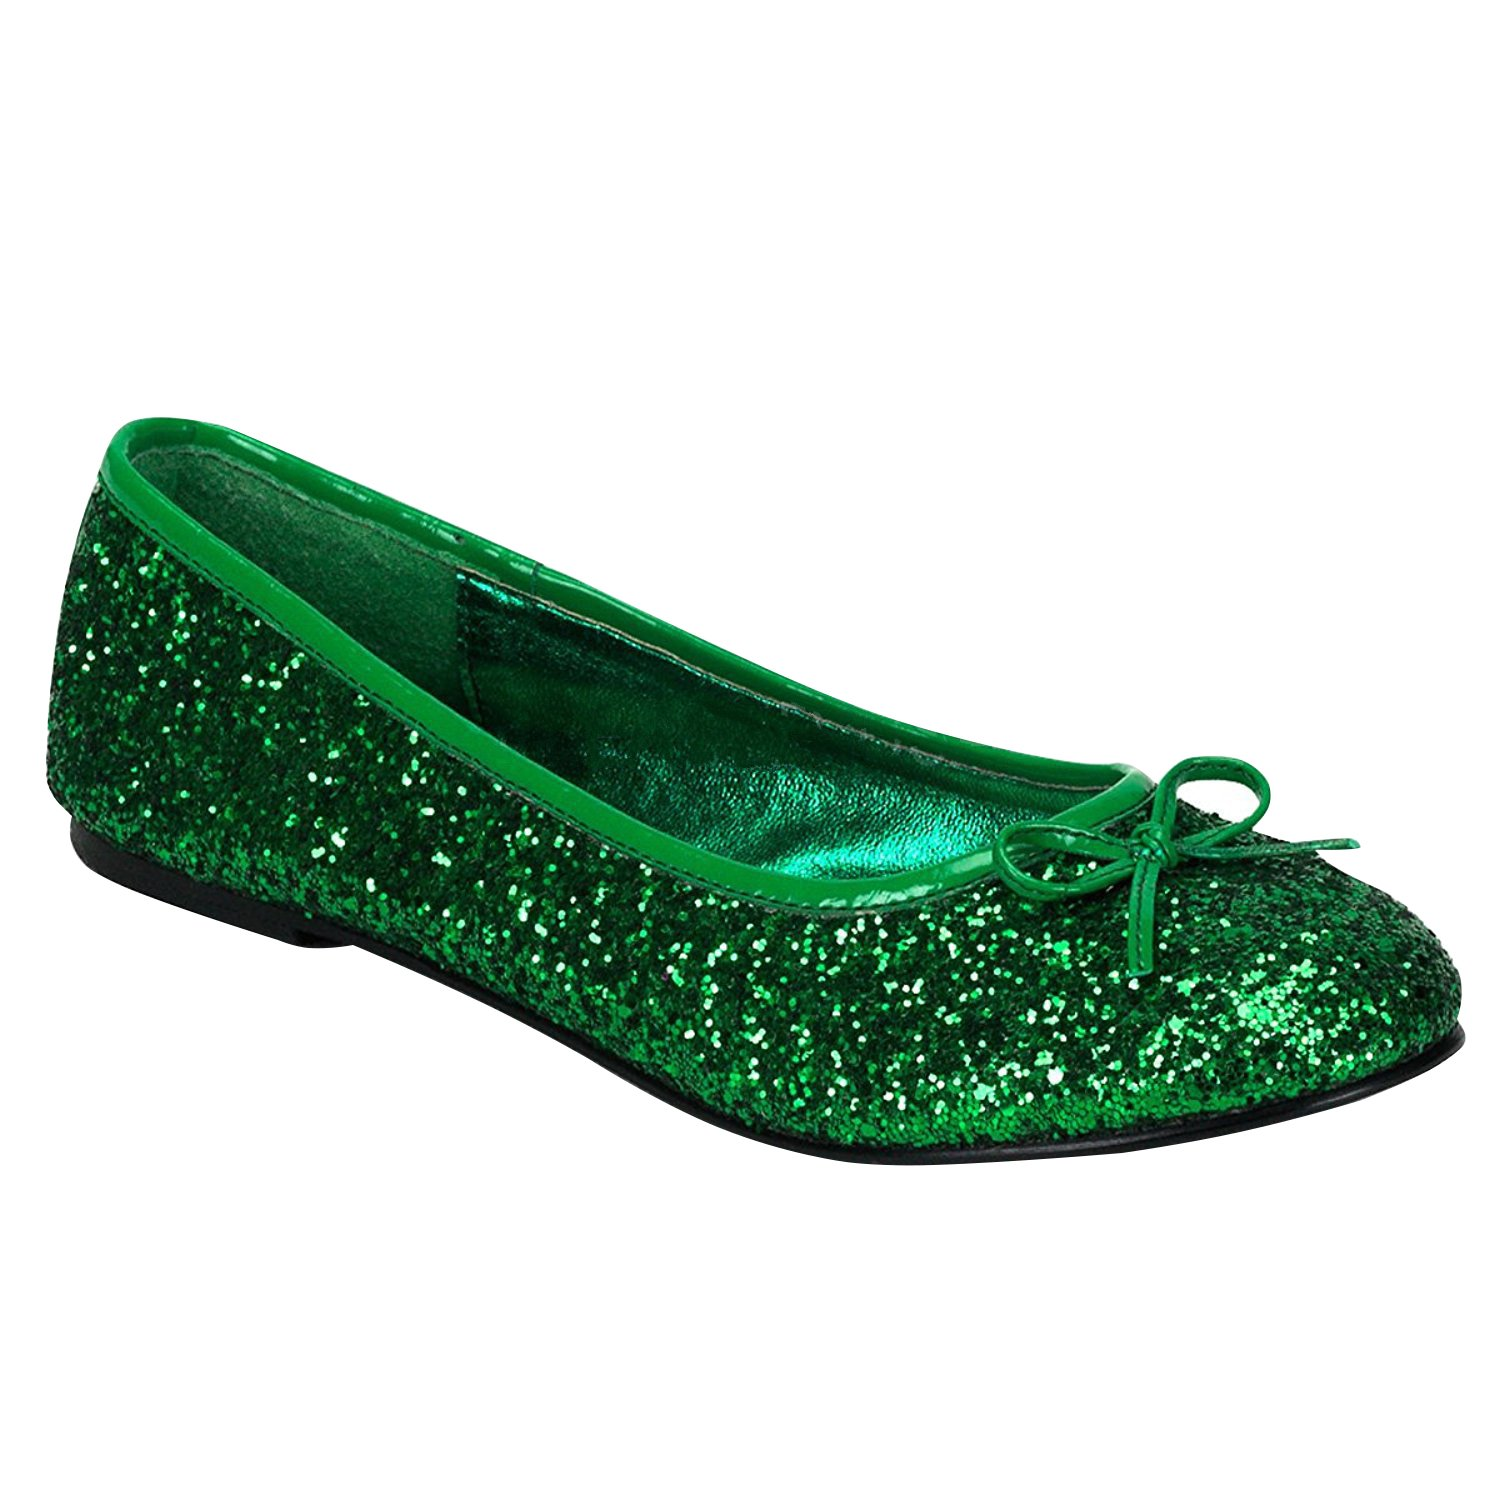 Funtasma STAR-16G womens Flats Shoes B074F3VJYV 7 B(M) US|Green Glitter